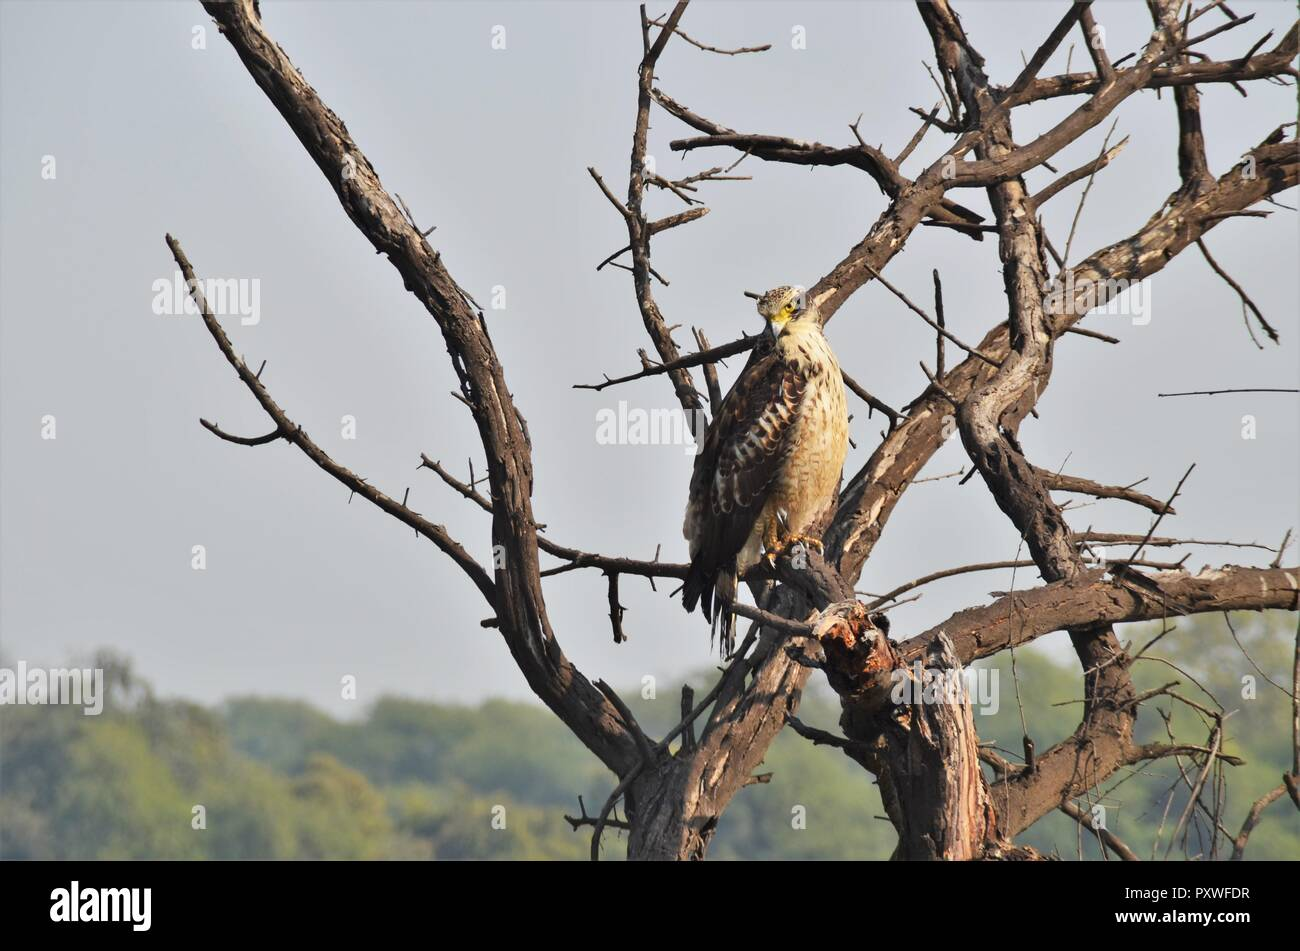 A juvenile Eagle waiting to spot a meal. - Stock Image